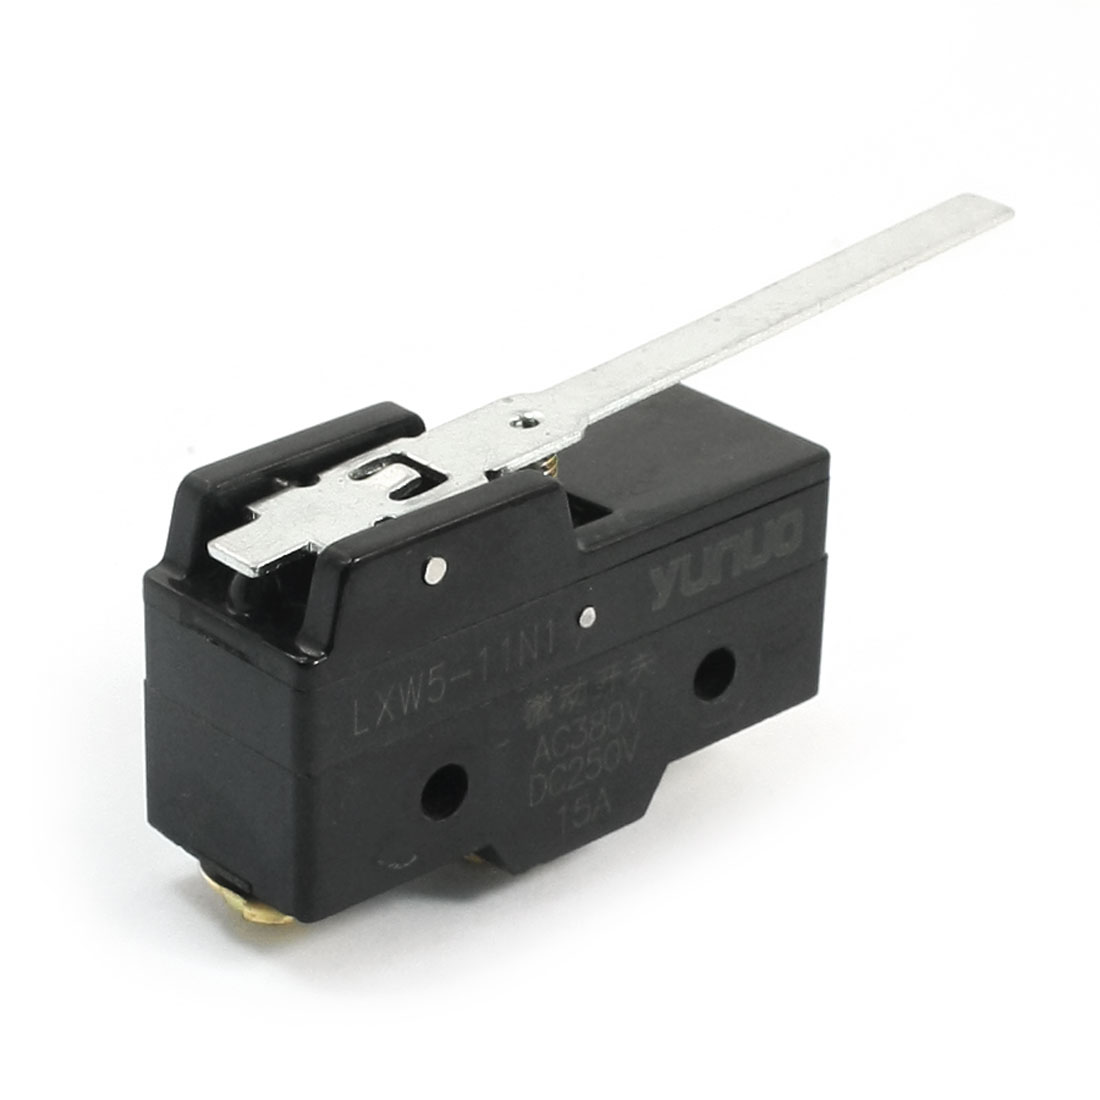 LXW5-11N1 SPDT NO NC Momentary Straight Hinge Lever Limit Switch Microswitch